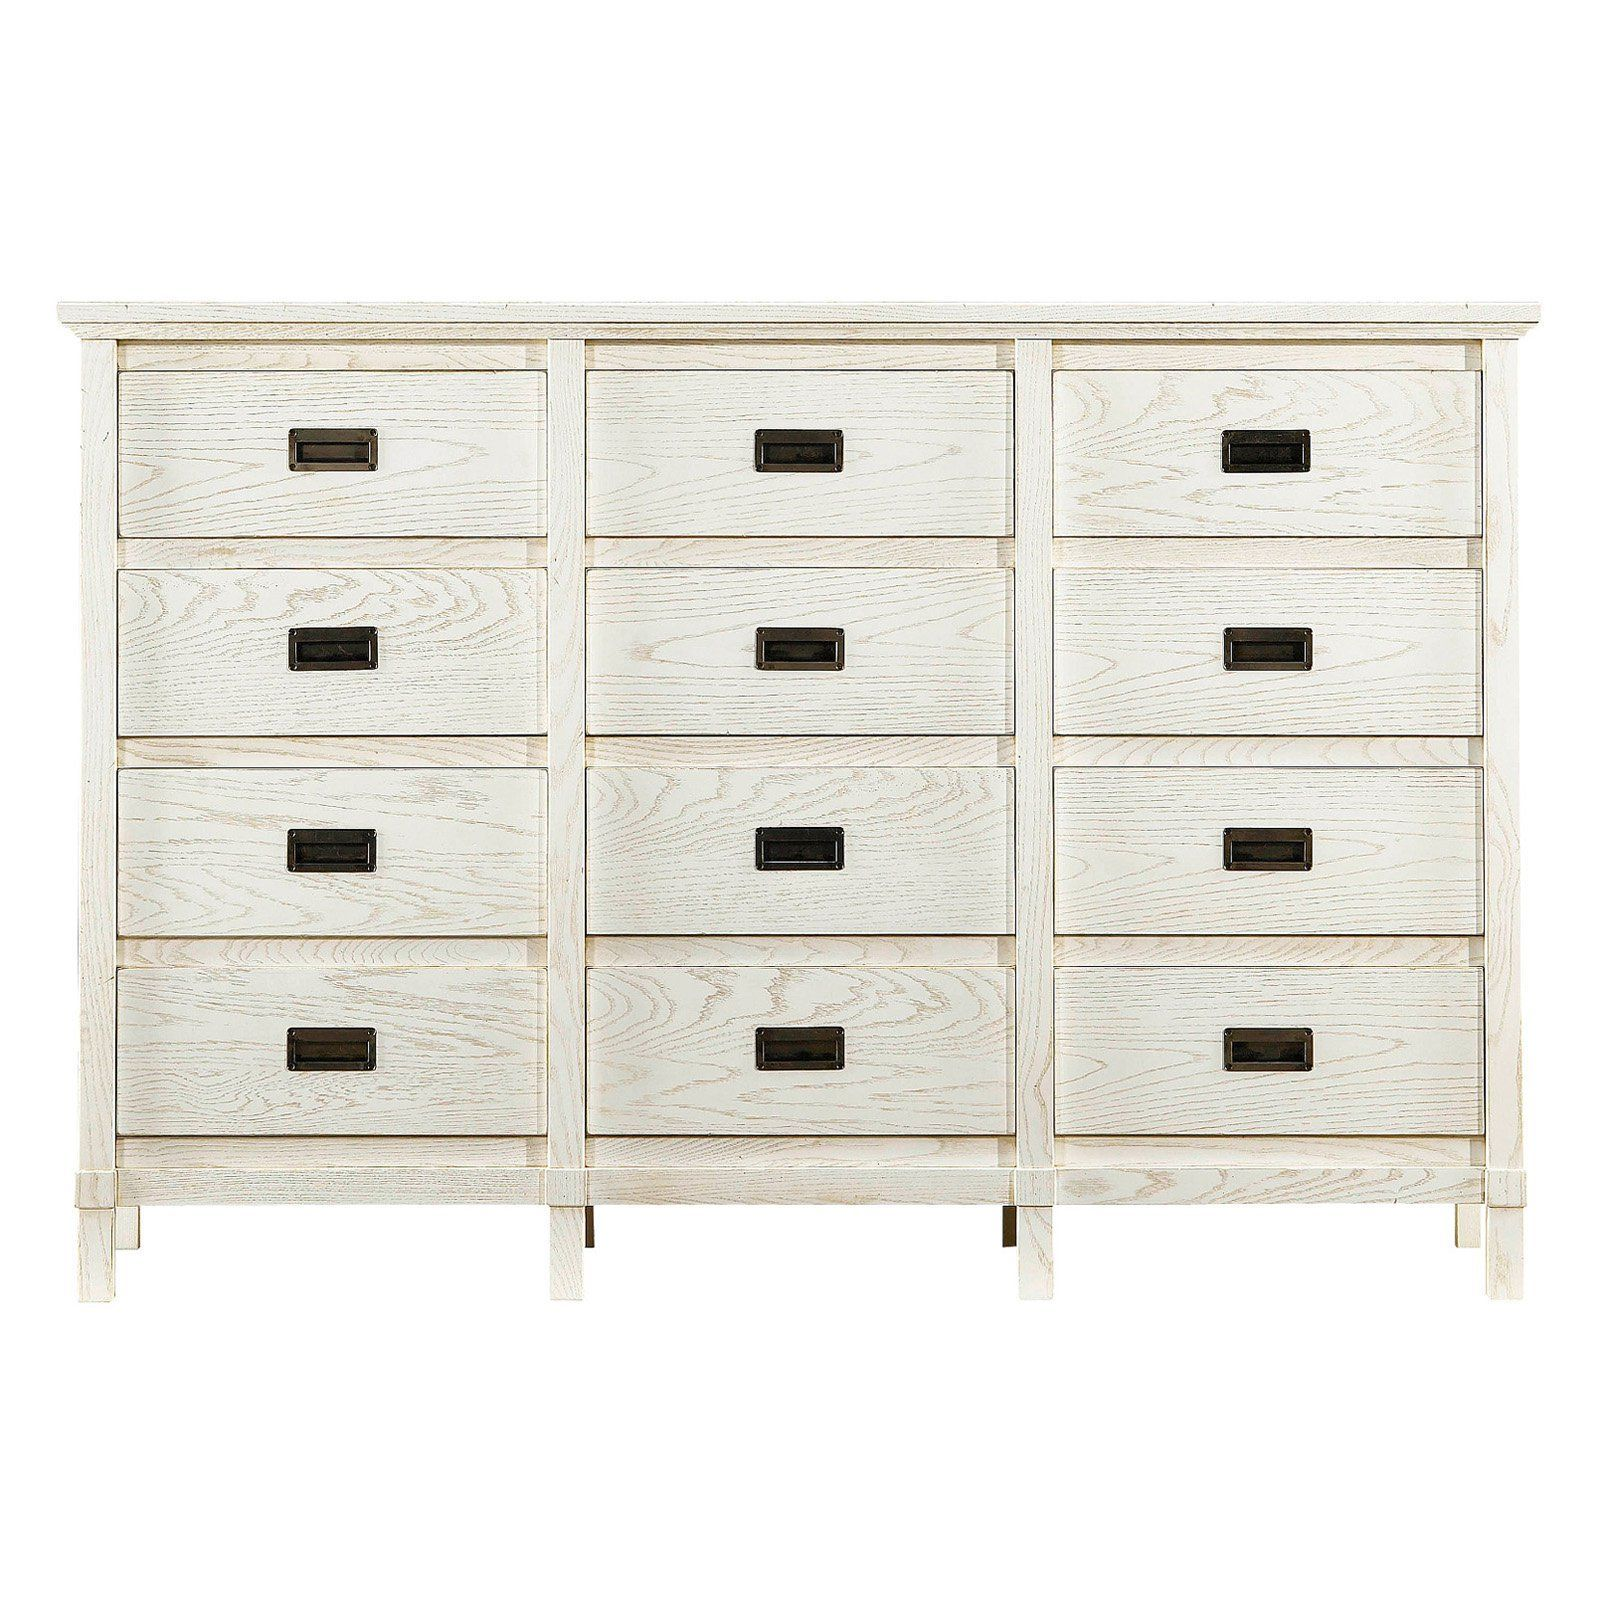 12 Drawer Chest Of Drawers Stanley Coastal Living Resort Haven S Harbor 12 Drawer Dresser